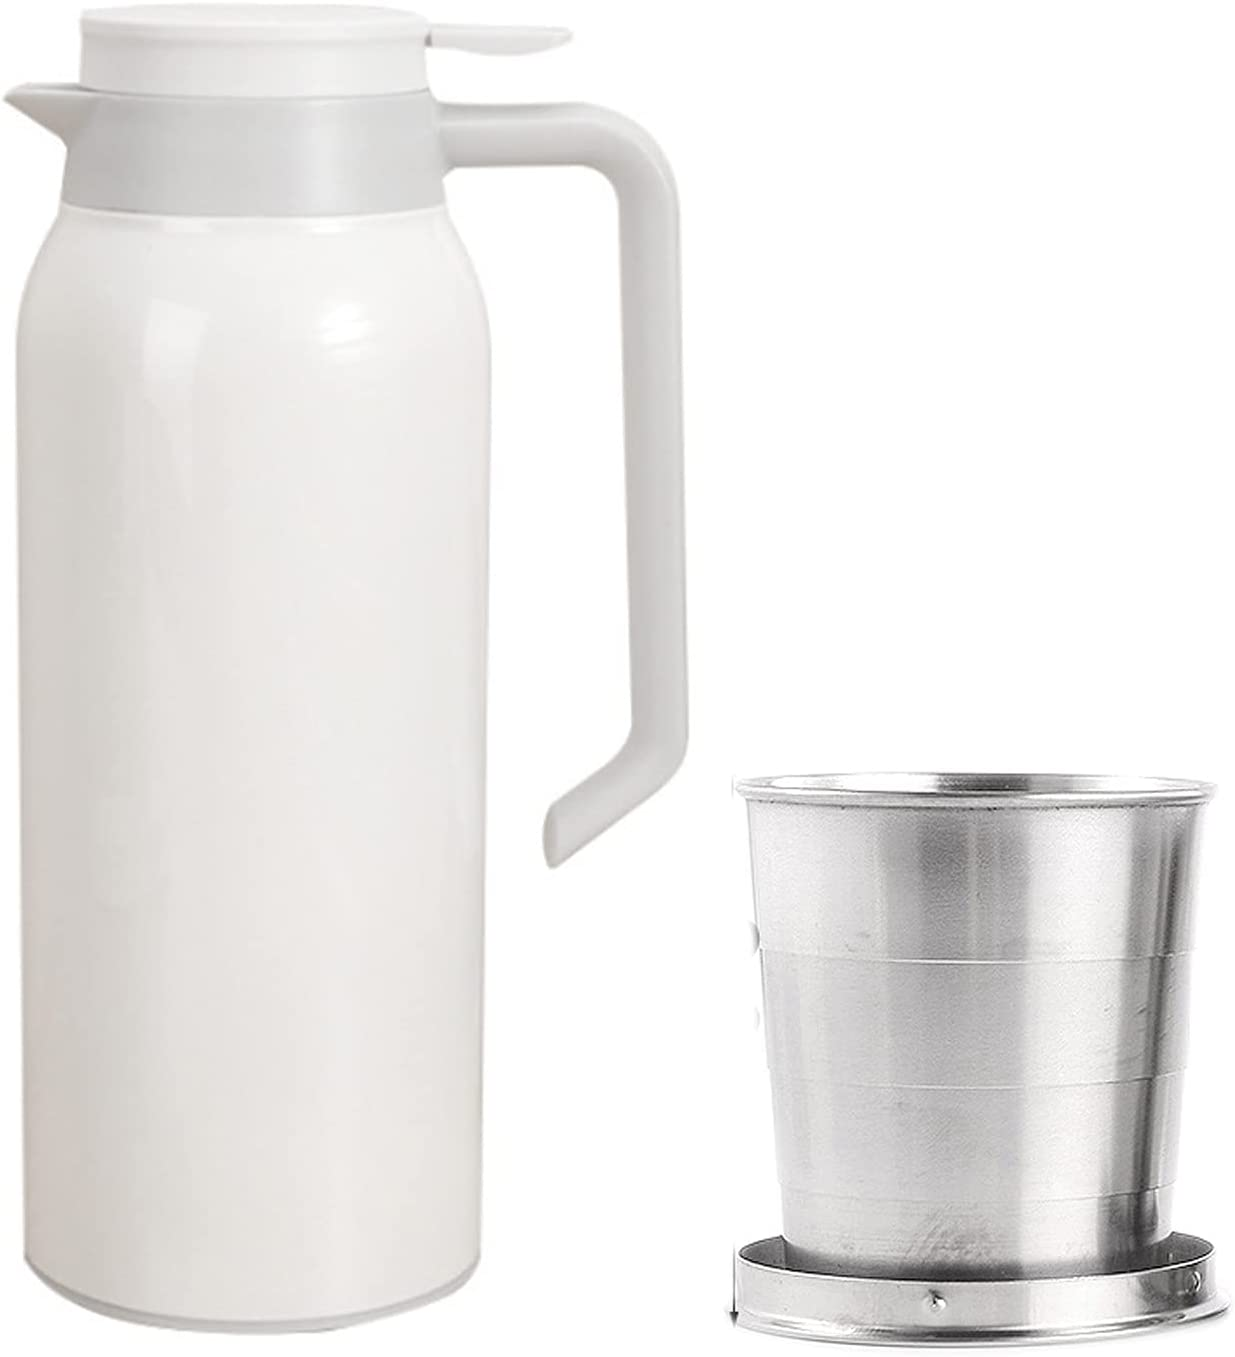 FDQNDXF Coffee Carafe 51 Max 90% OFF oz Insulated Stainless Steel Popular brand in the world Du